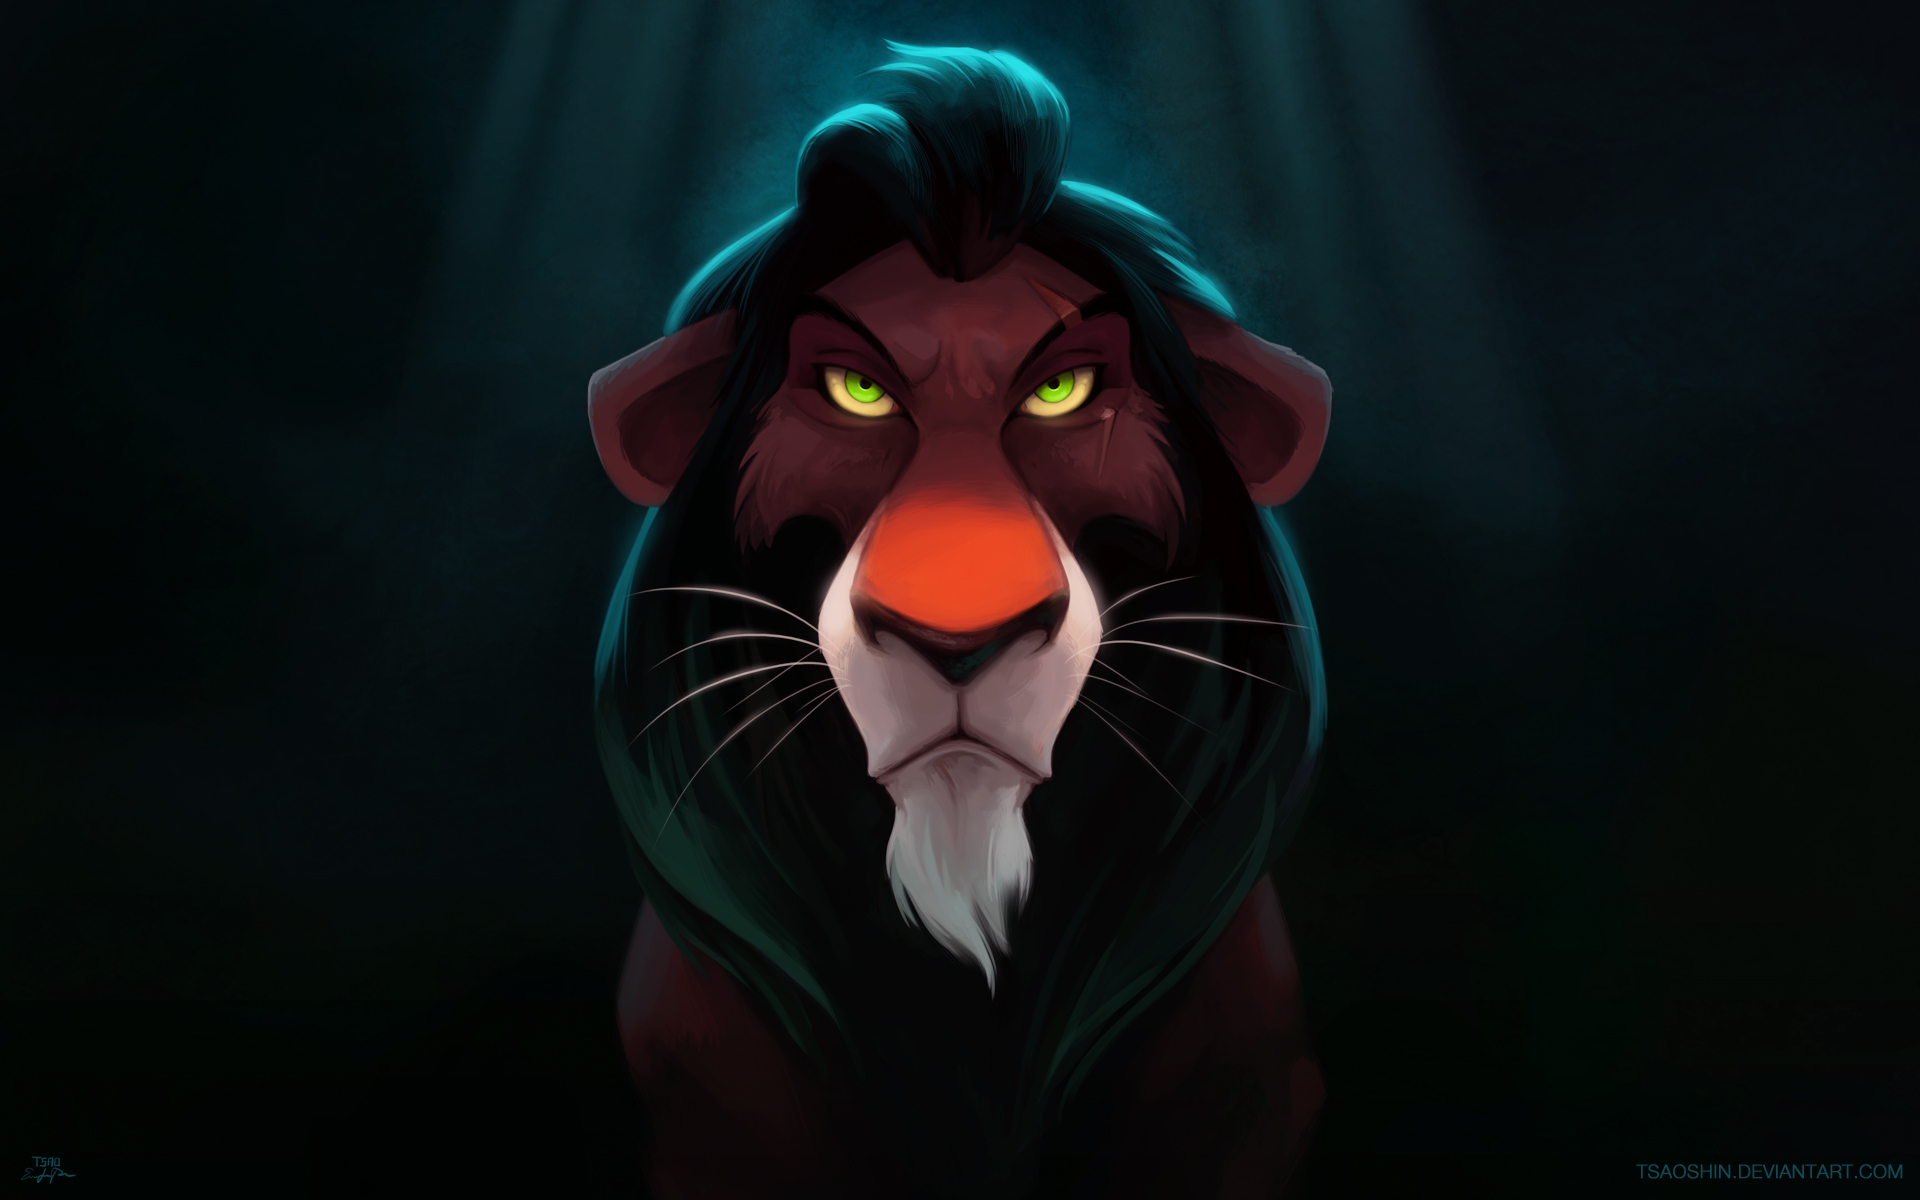 the lion king full hd wallpaper and background image | 1920x1200